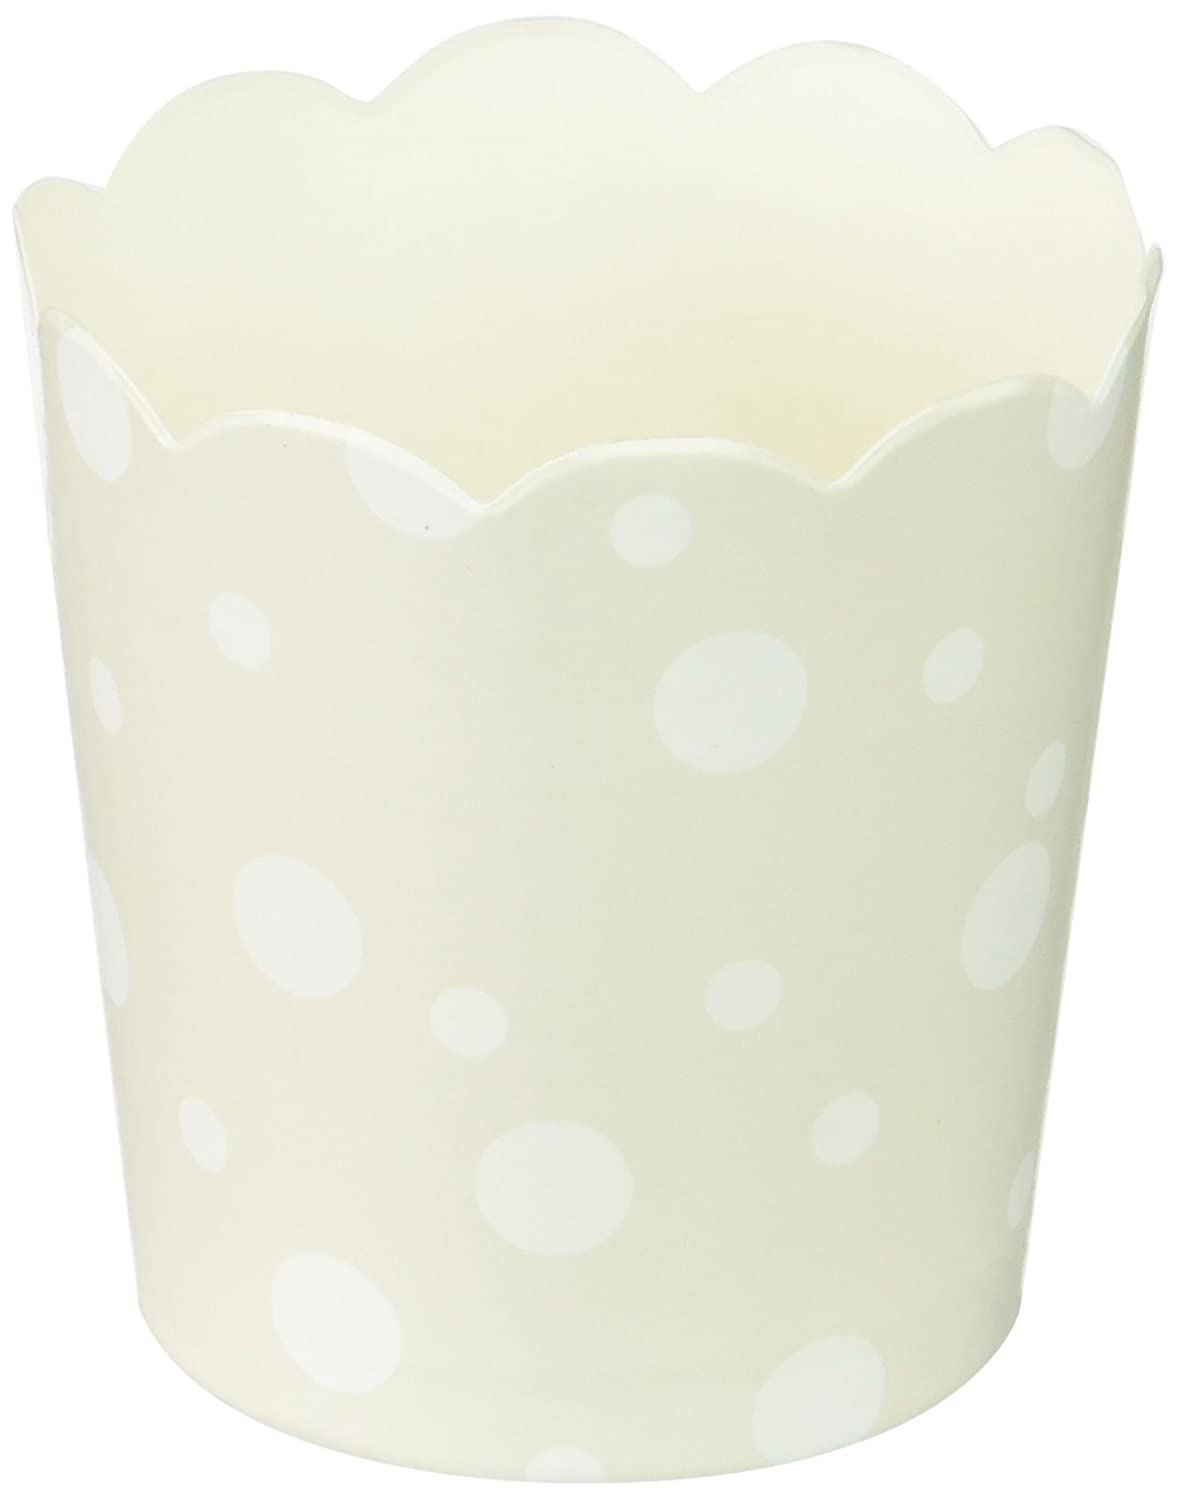 Simply Baked Petite Paper Baking Cups Pearl & White Dots 20-Pack Disposable and Oven-safe